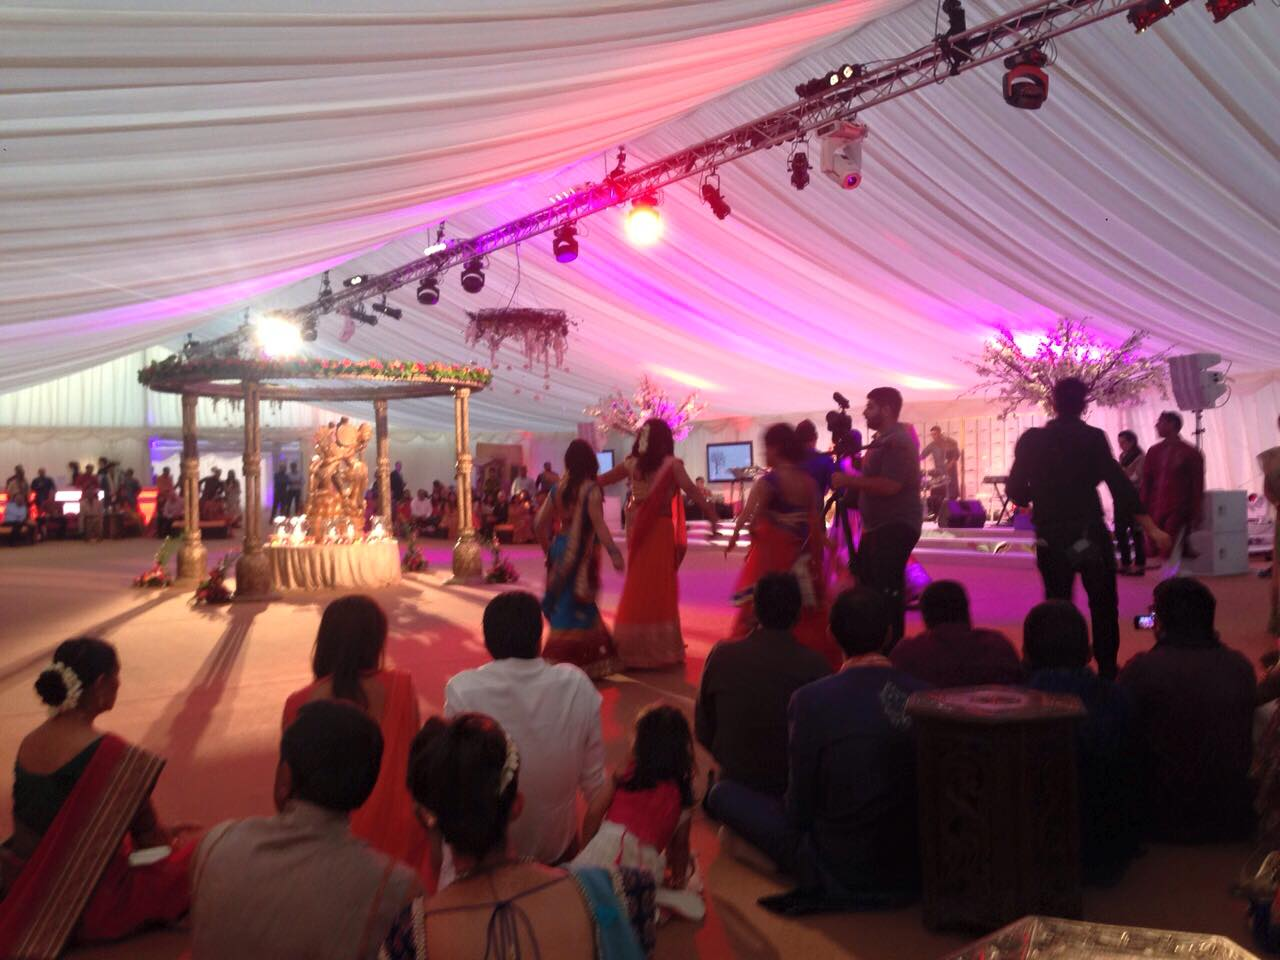 ... London Wedding Marquee Hire Dancefloor ... & Start of The Big Fat Indian Wedding - Marquee by Bees Marquees ...